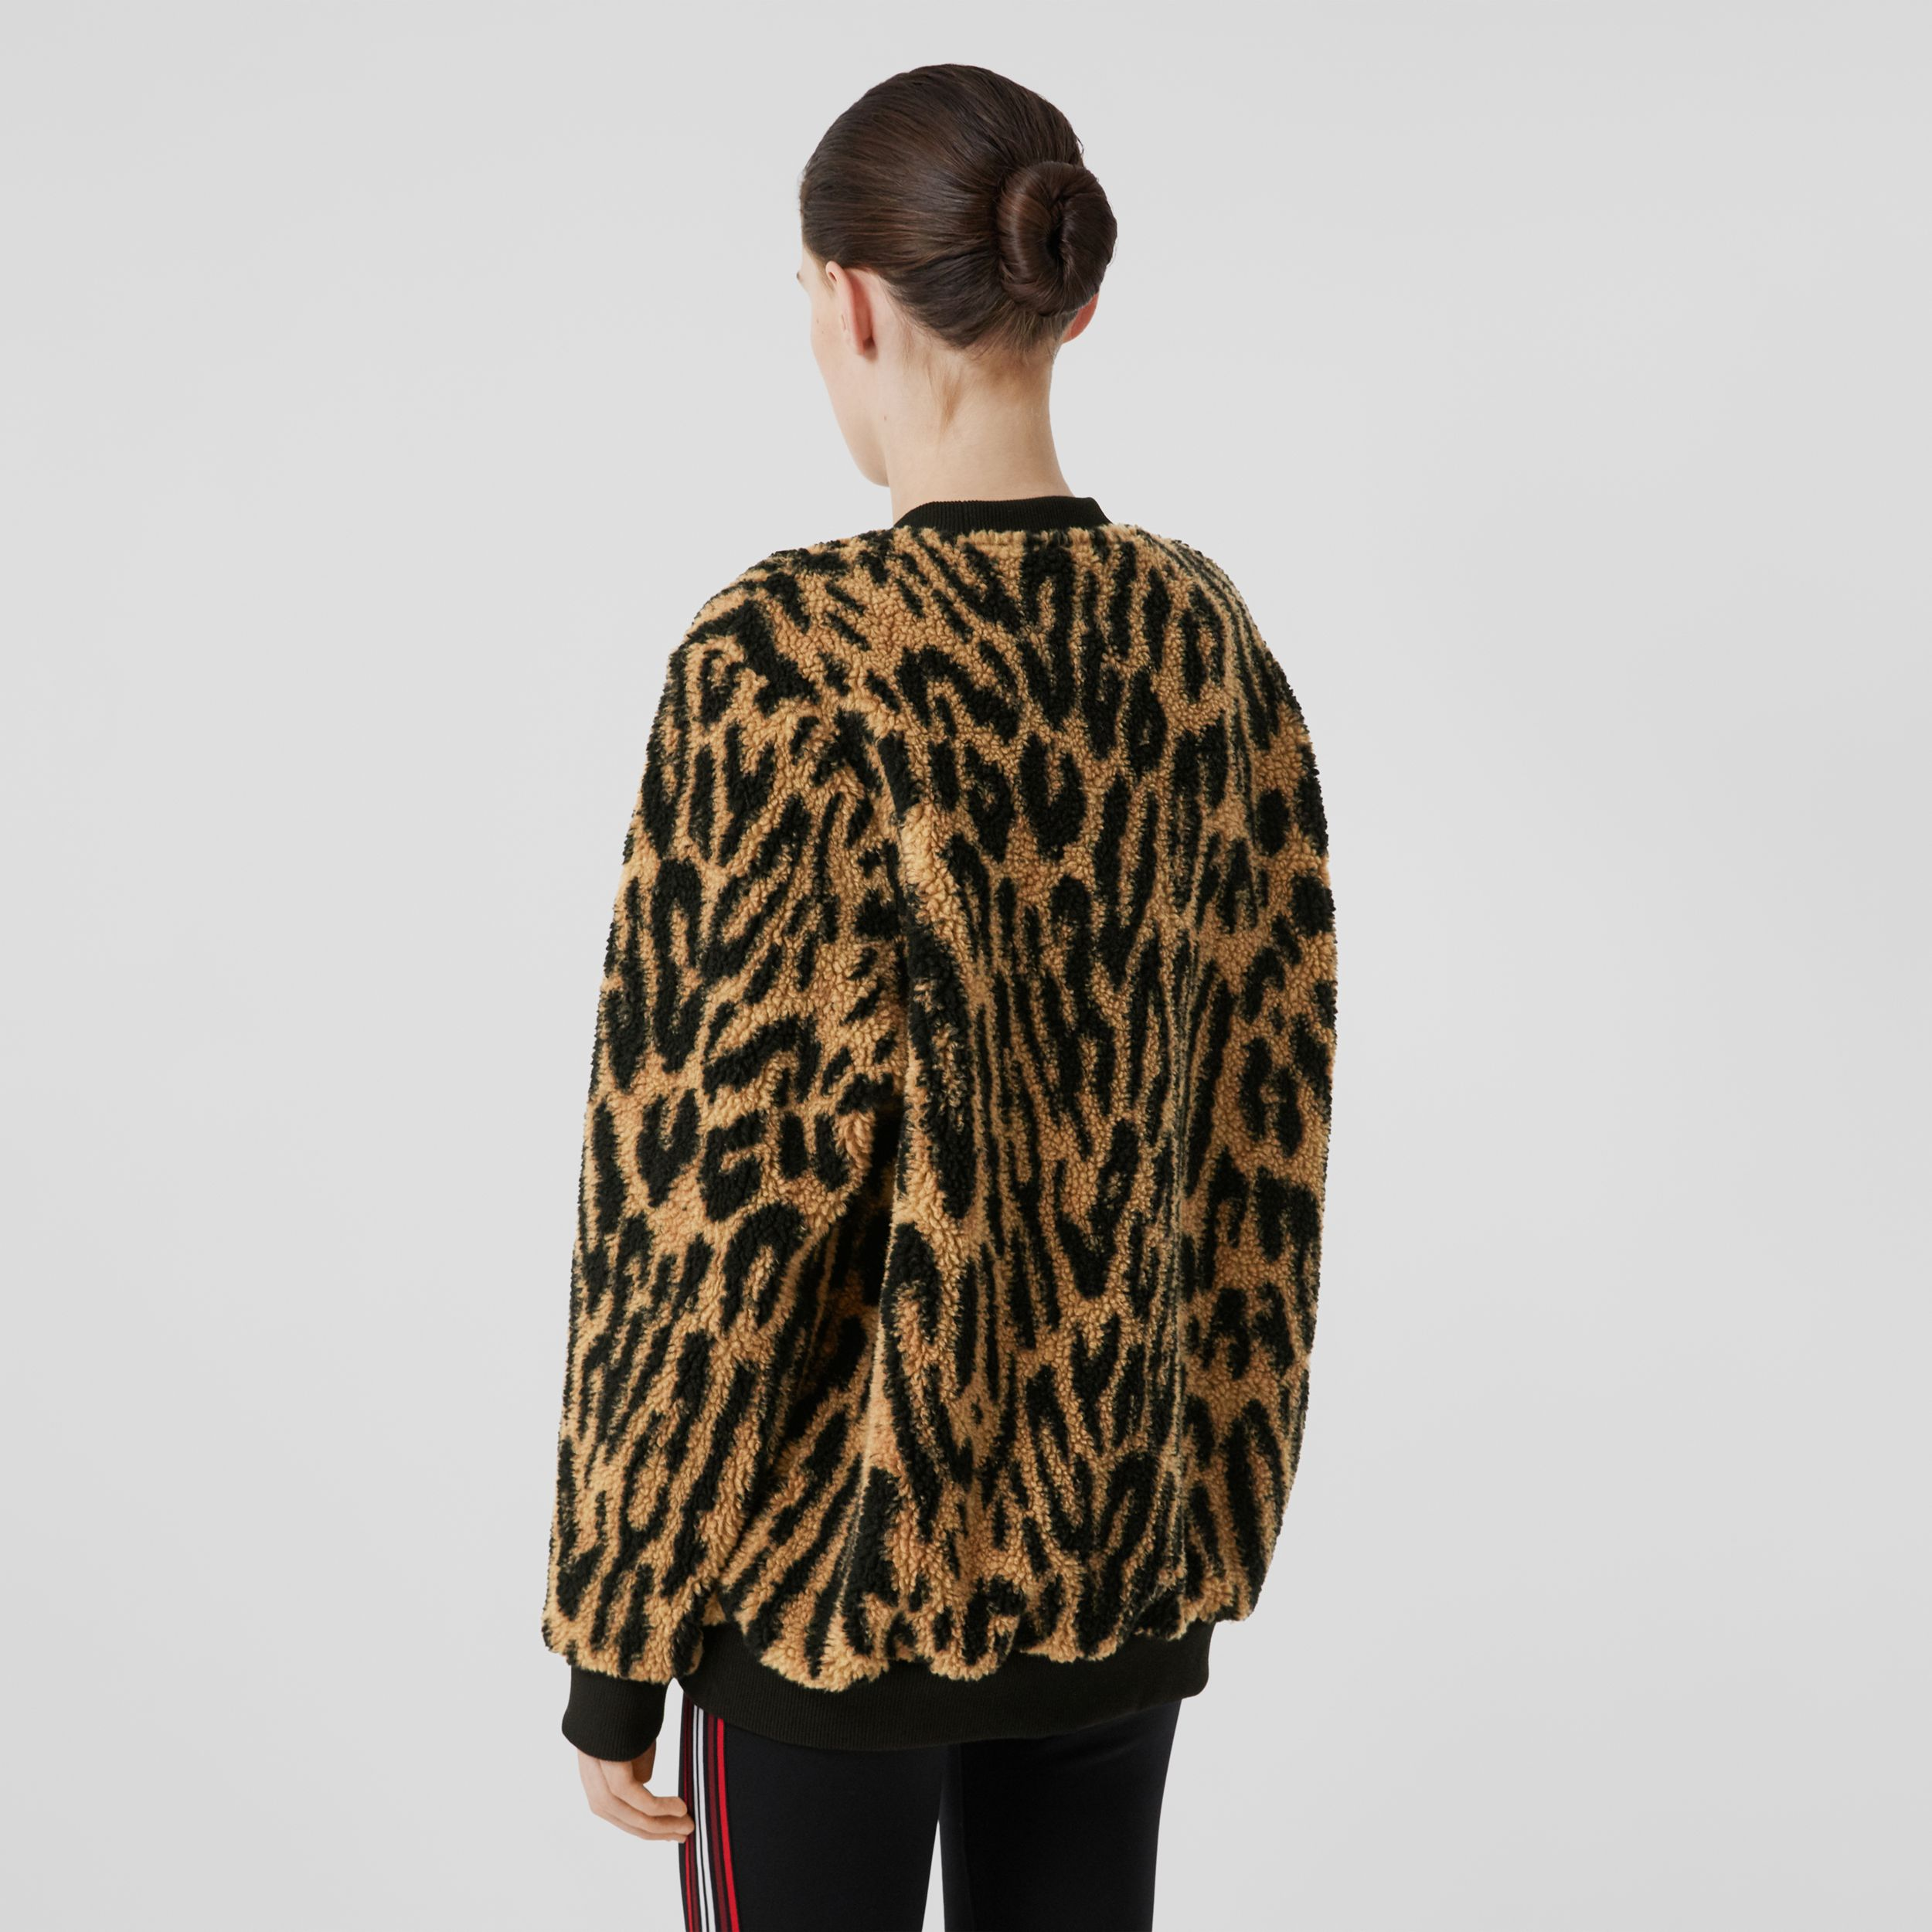 Logo Graphic Leopard Fleece Jacquard Sweatshirt in Dark Mustard - Women | Burberry - 3